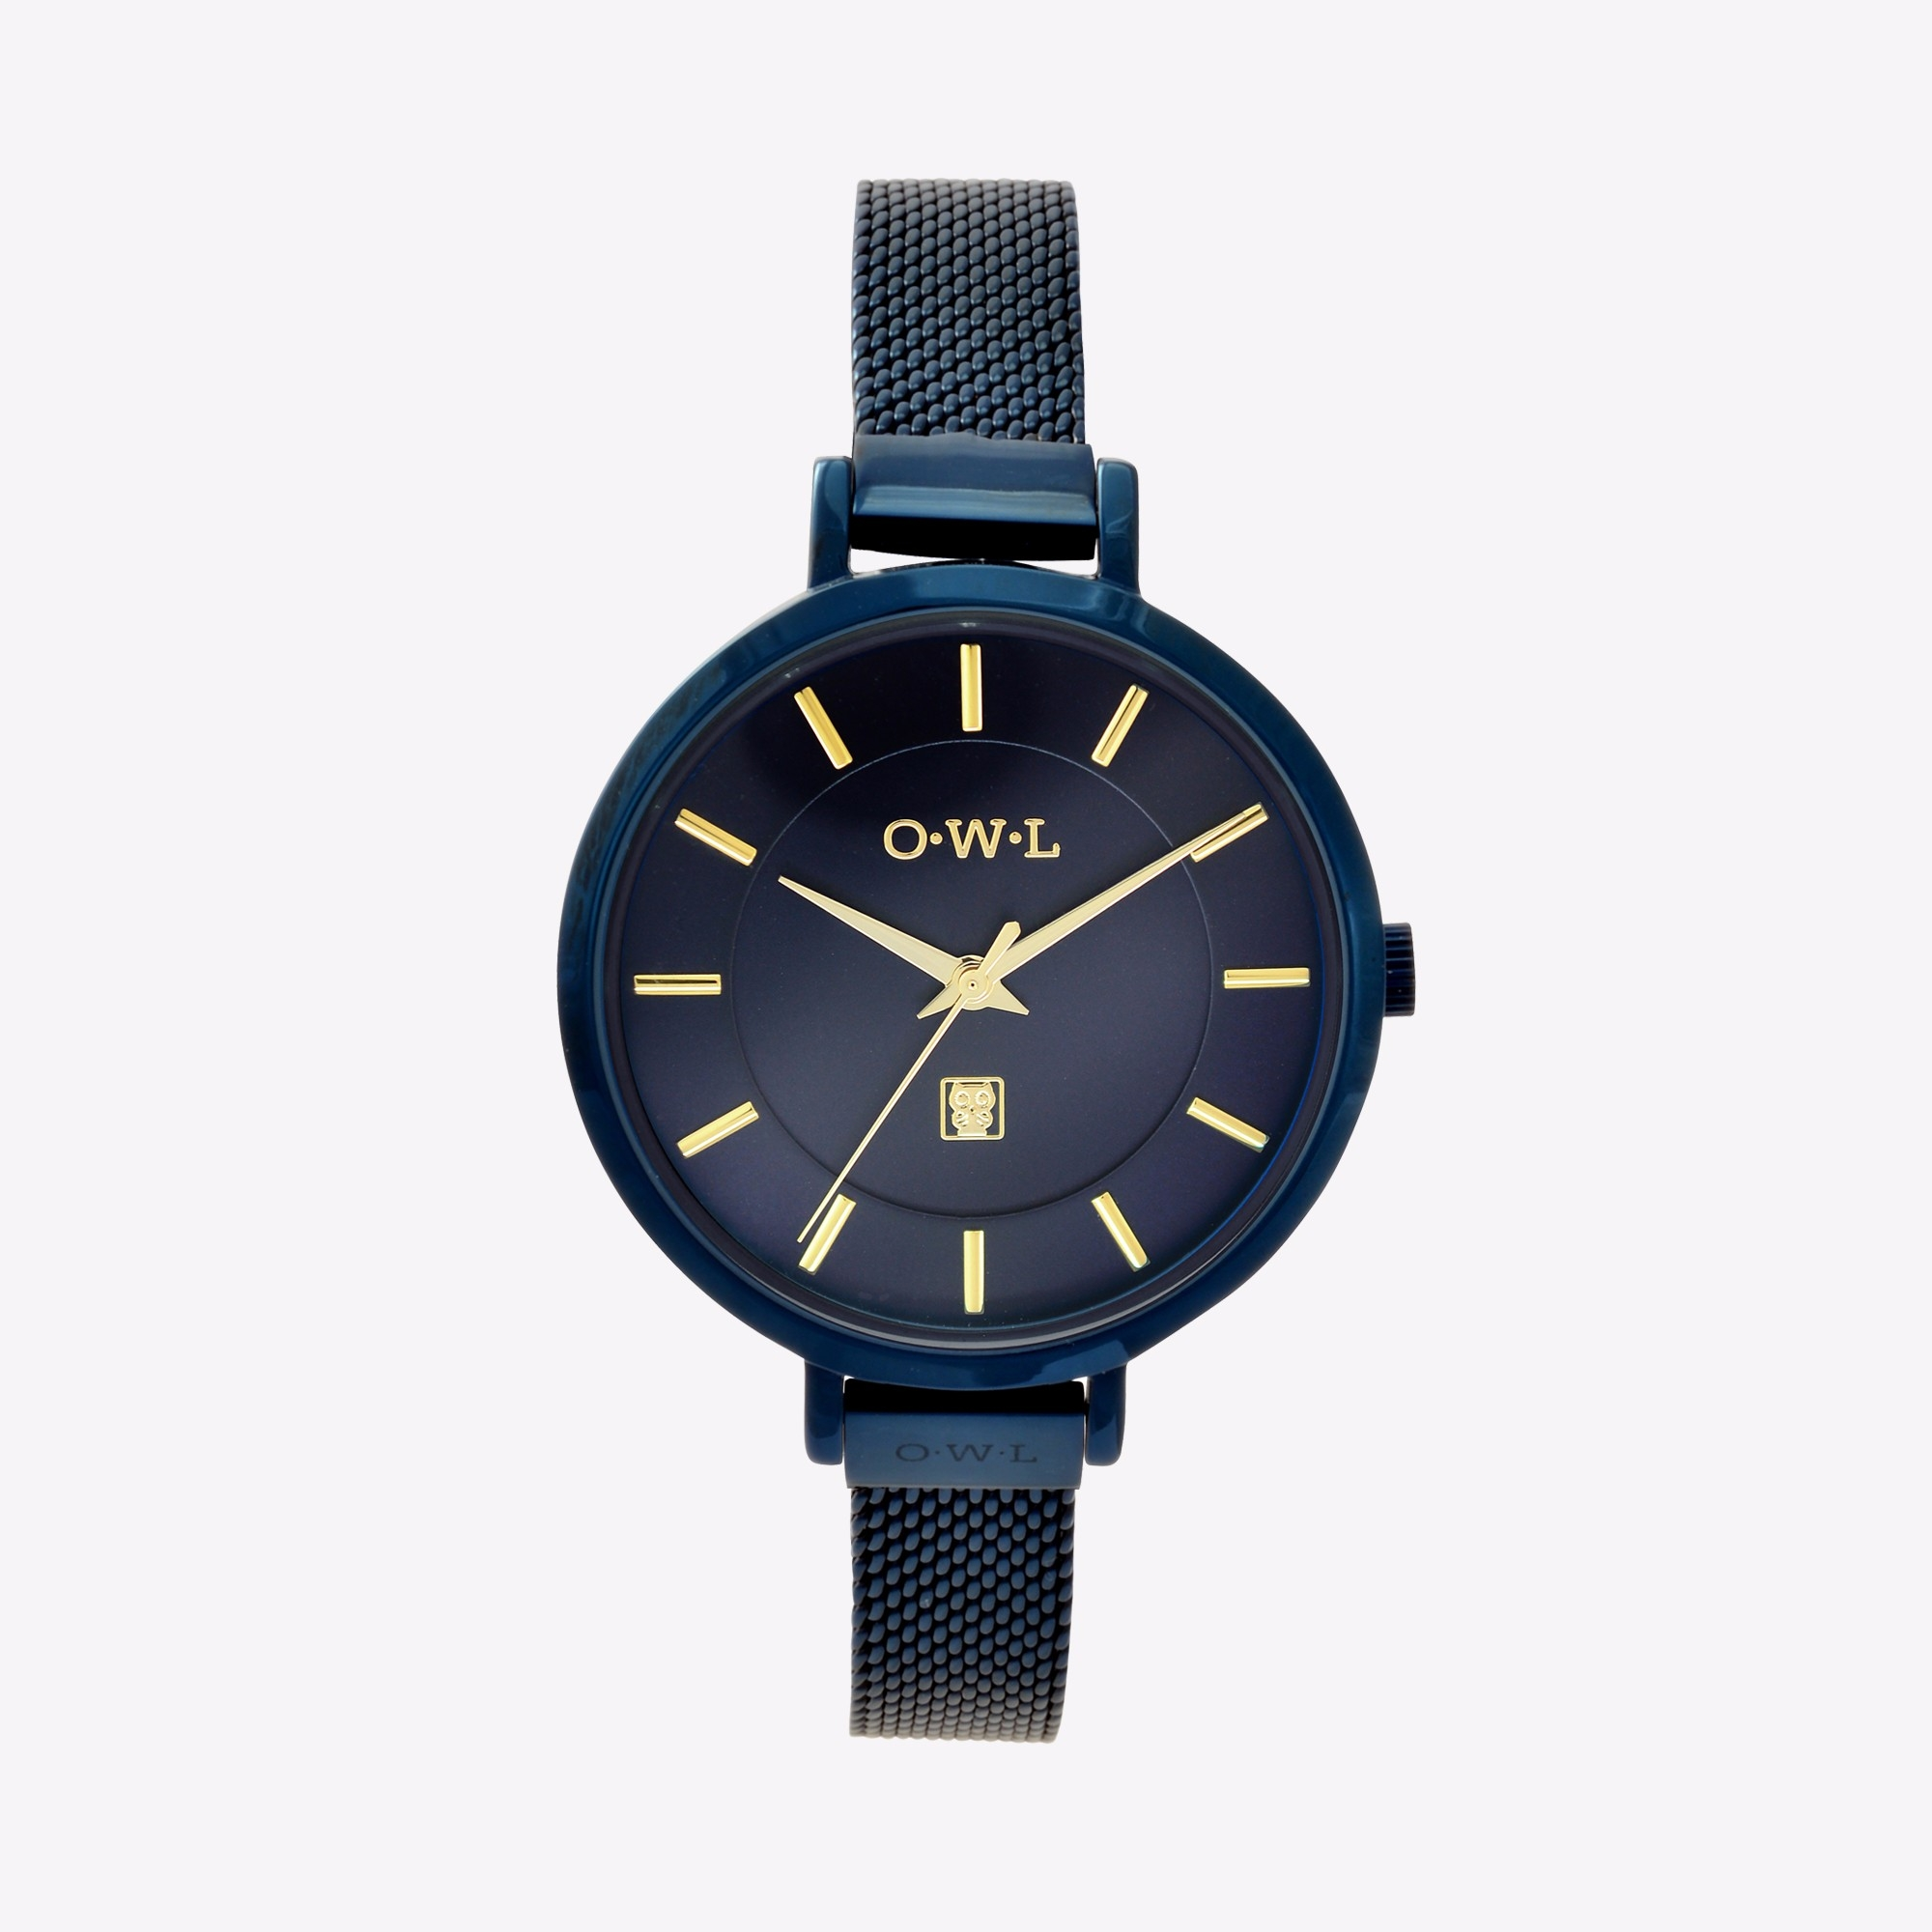 The Ledbury Watch in Deep Blue